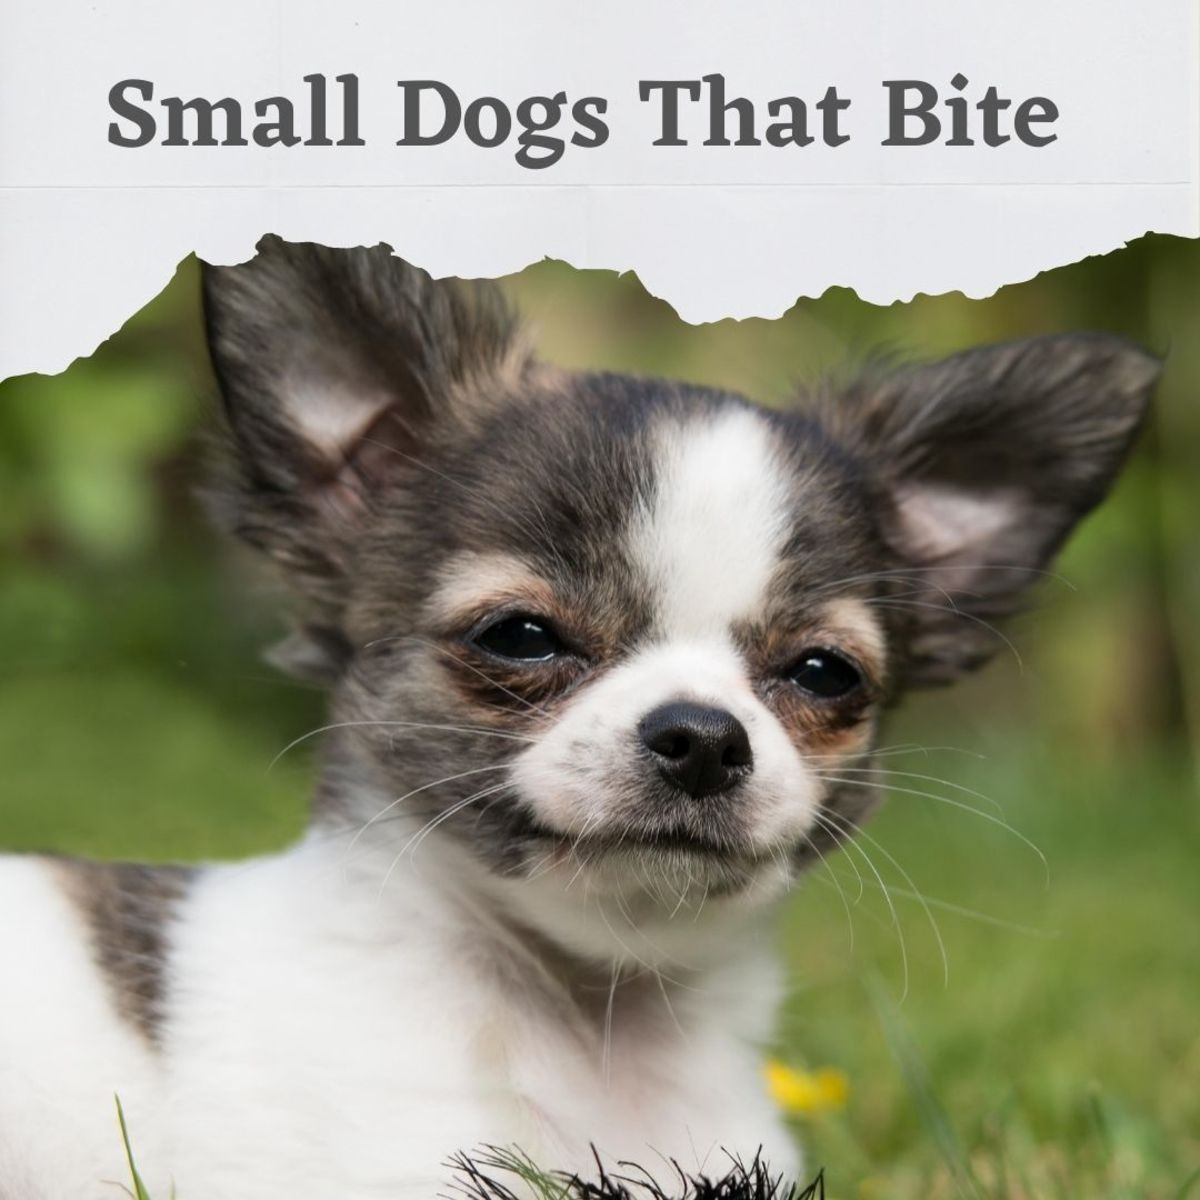 5 Dog Breeds That Bite but Are Almost Never Reported